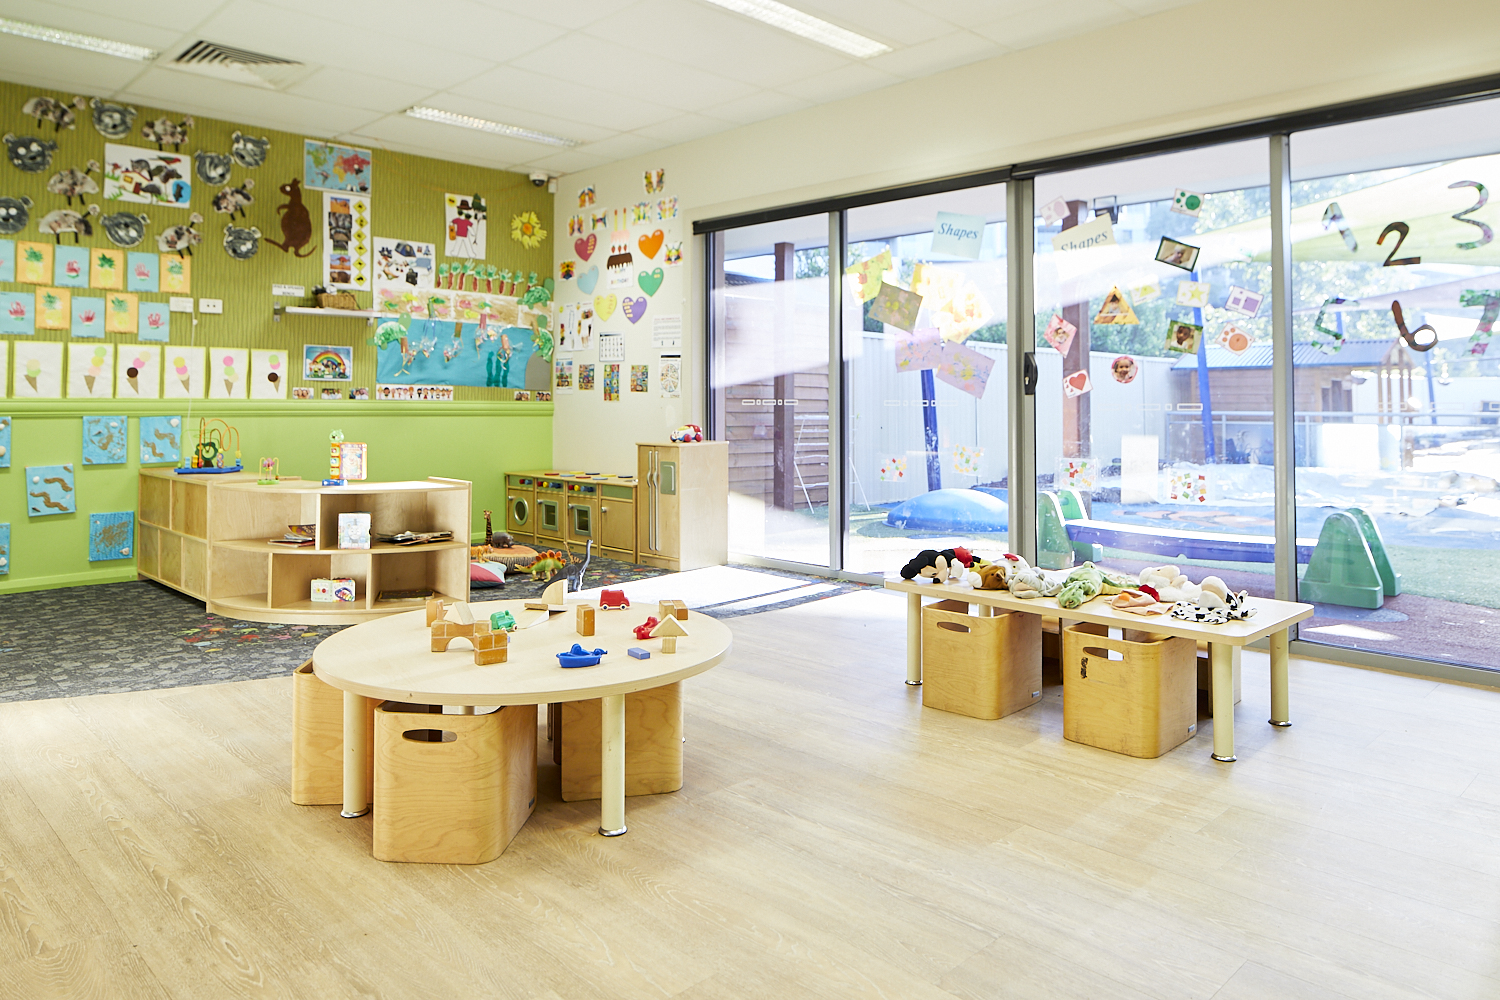 Preschool child care classroom at Papilio Epping